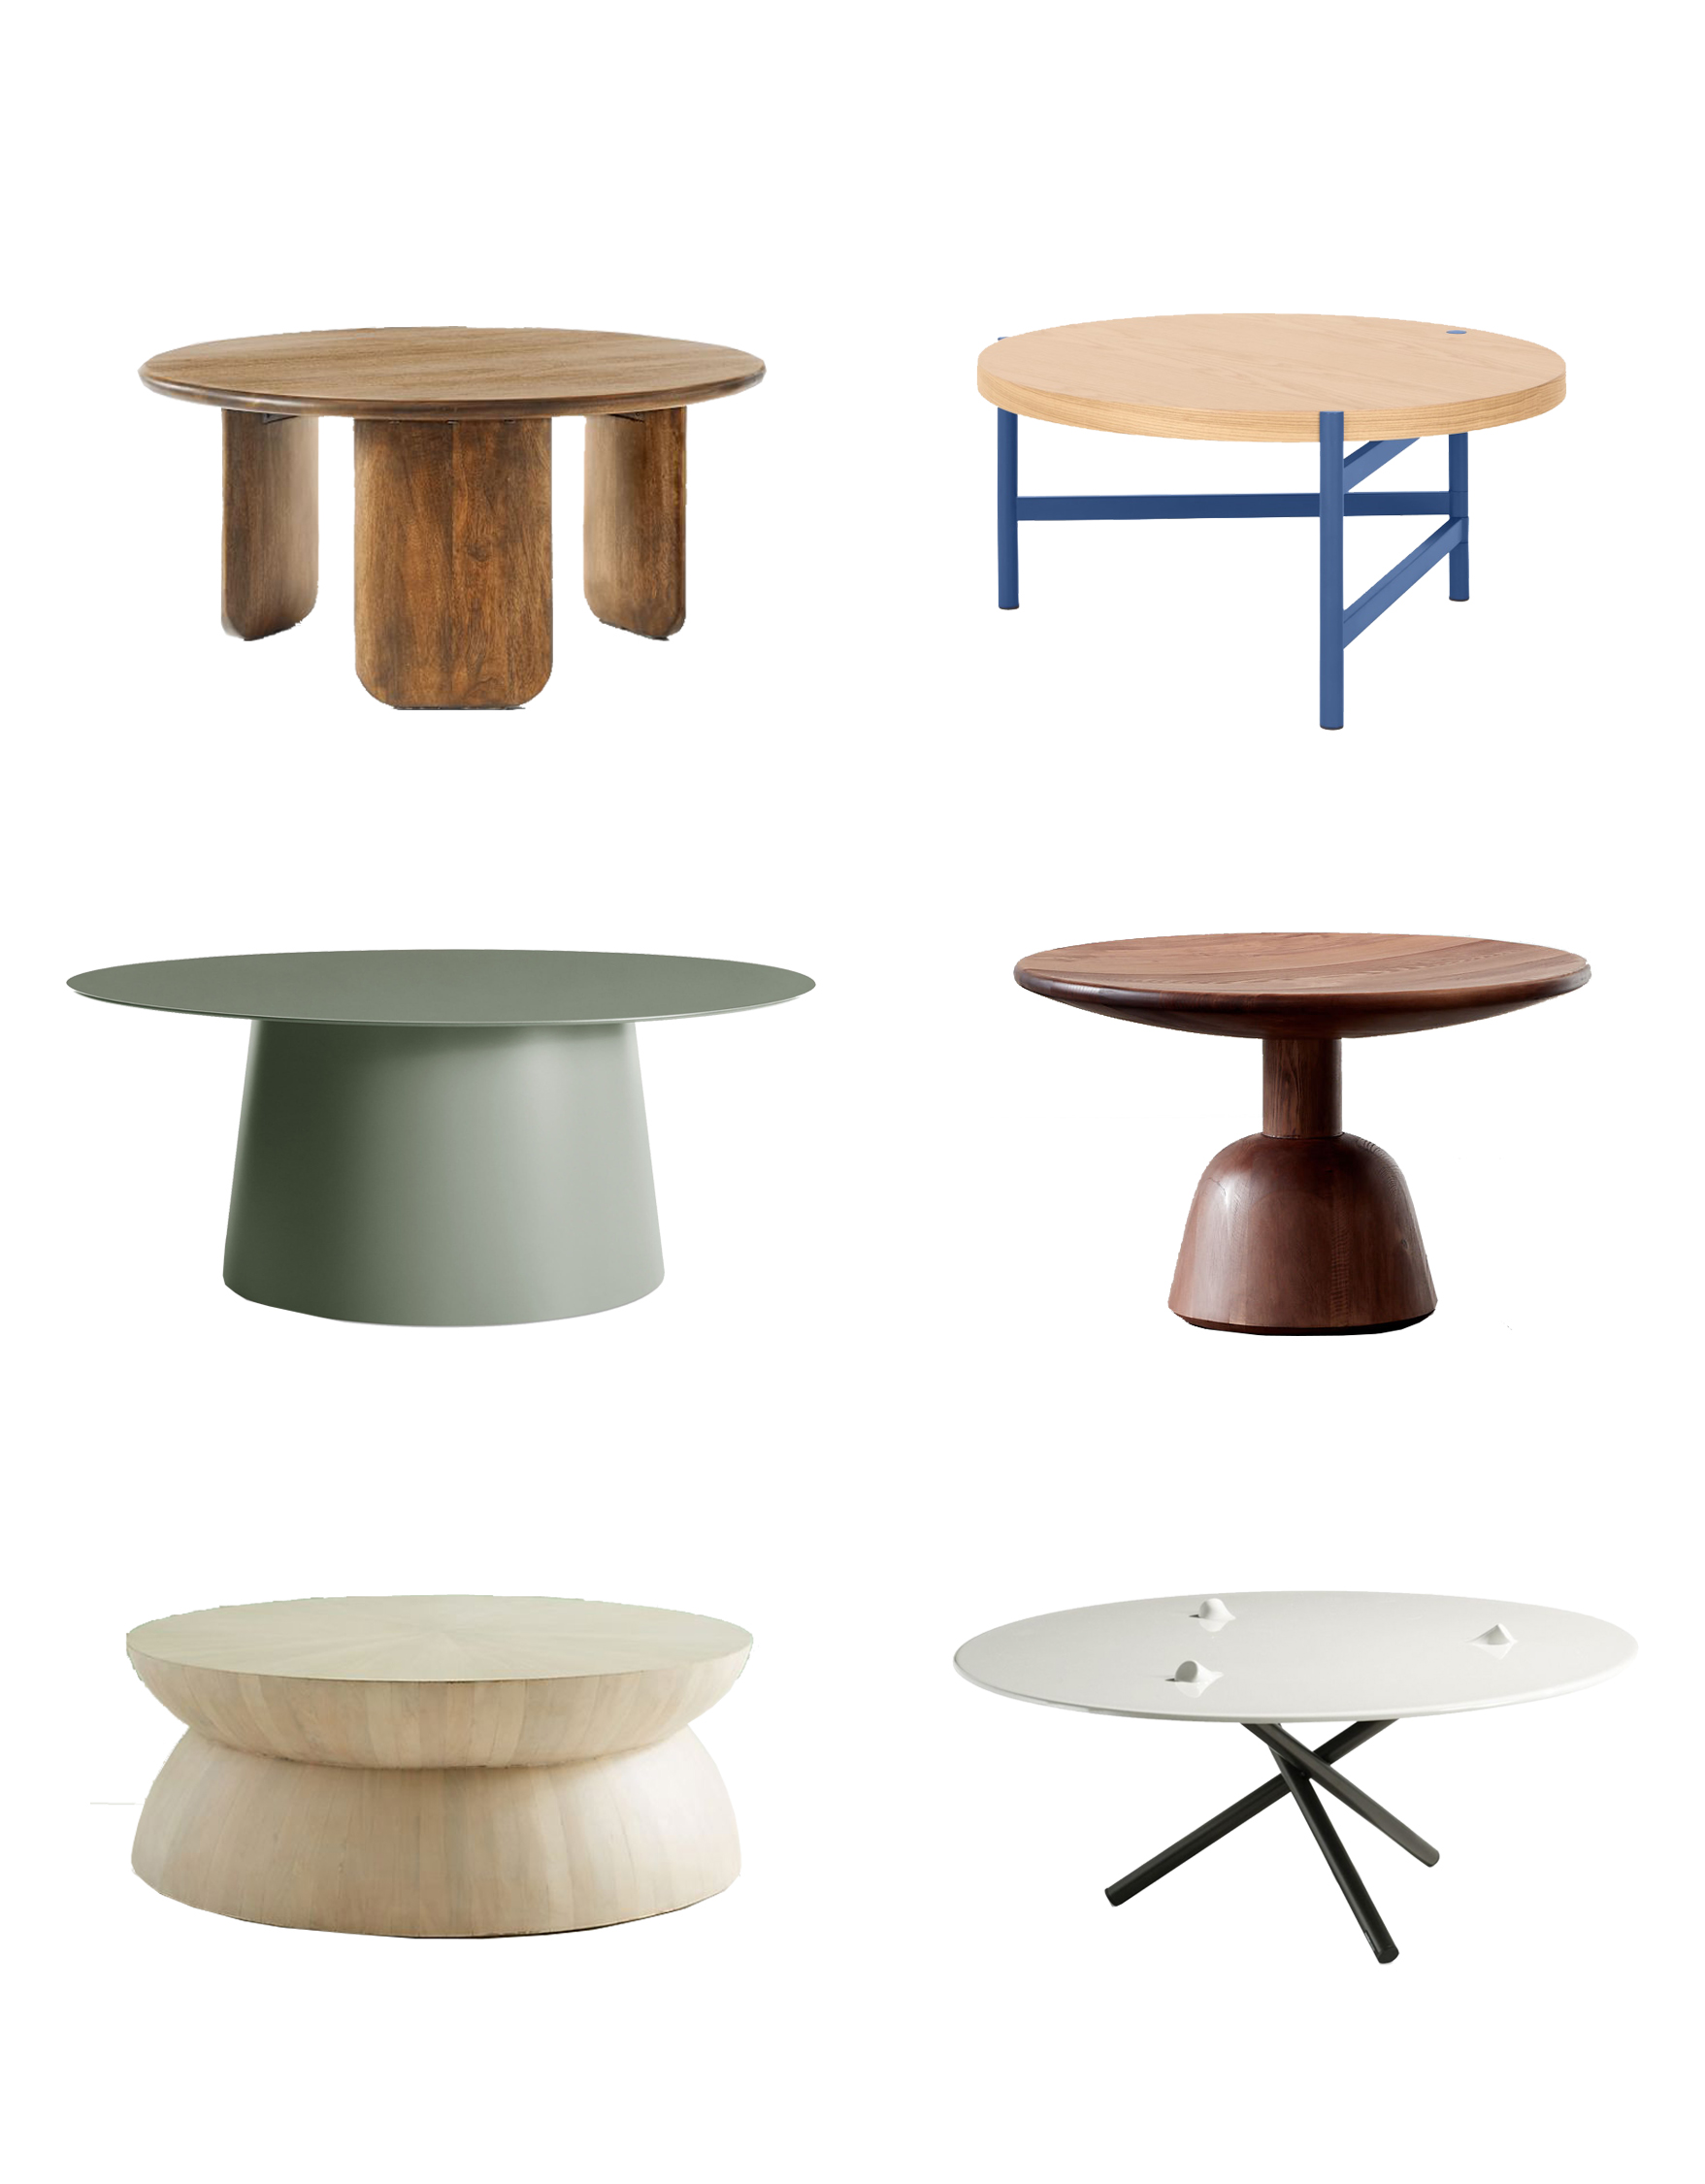 round coffee tables.jpg